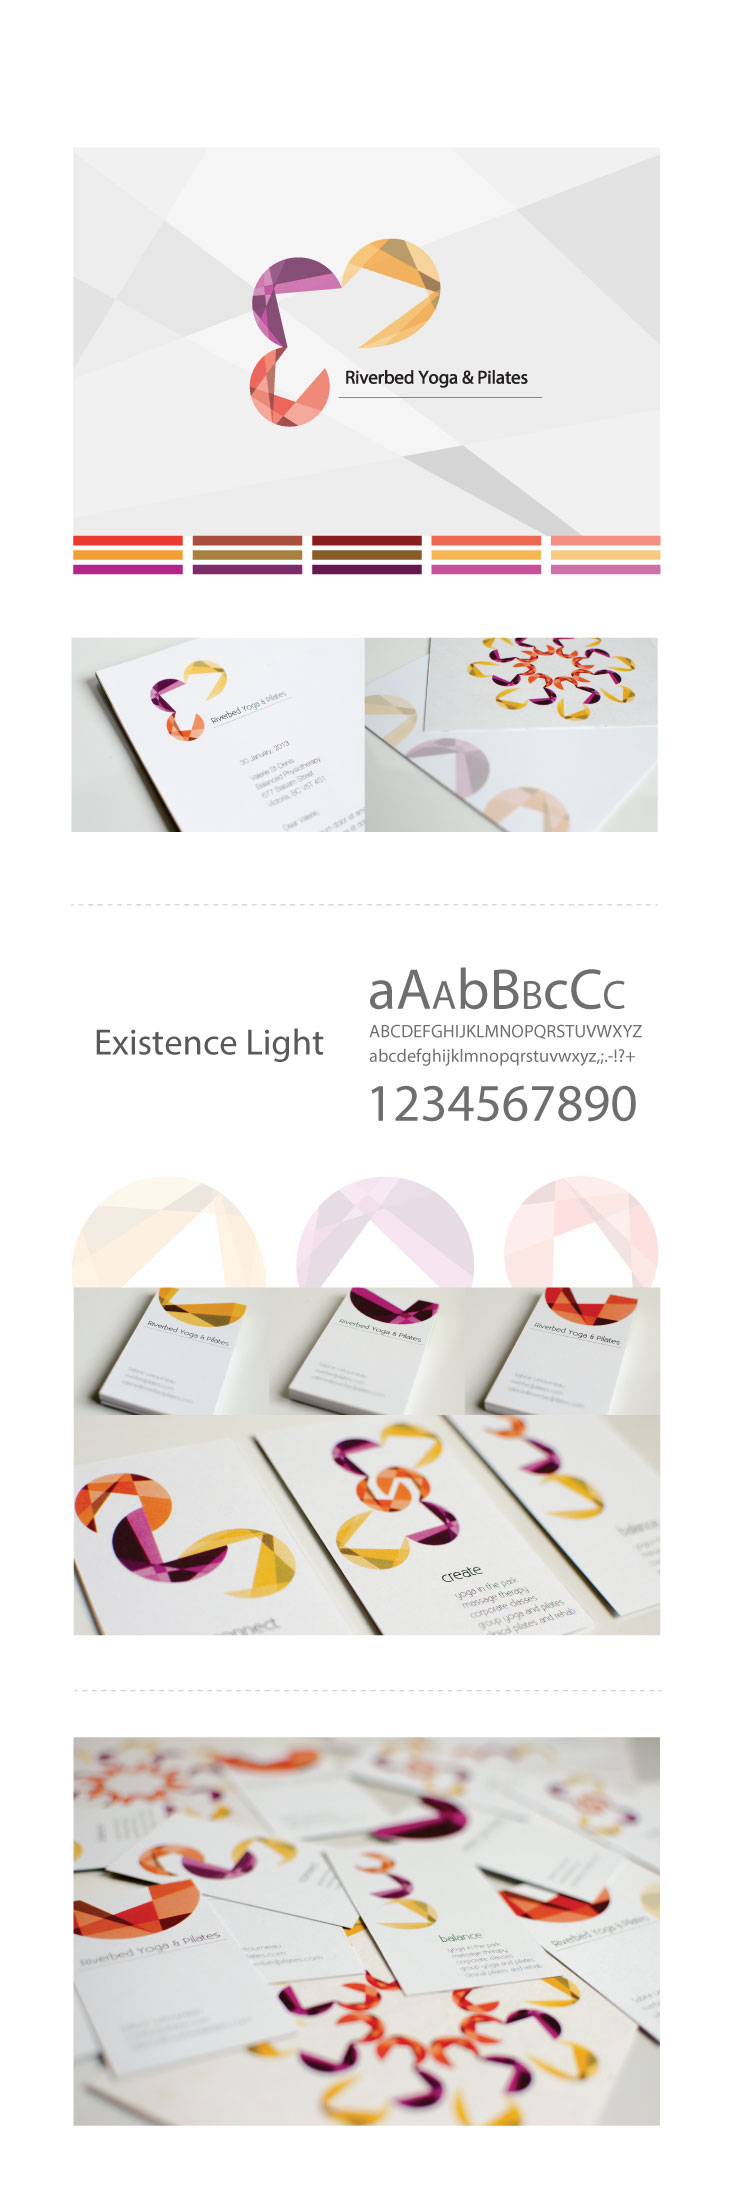 branded visual identity layout